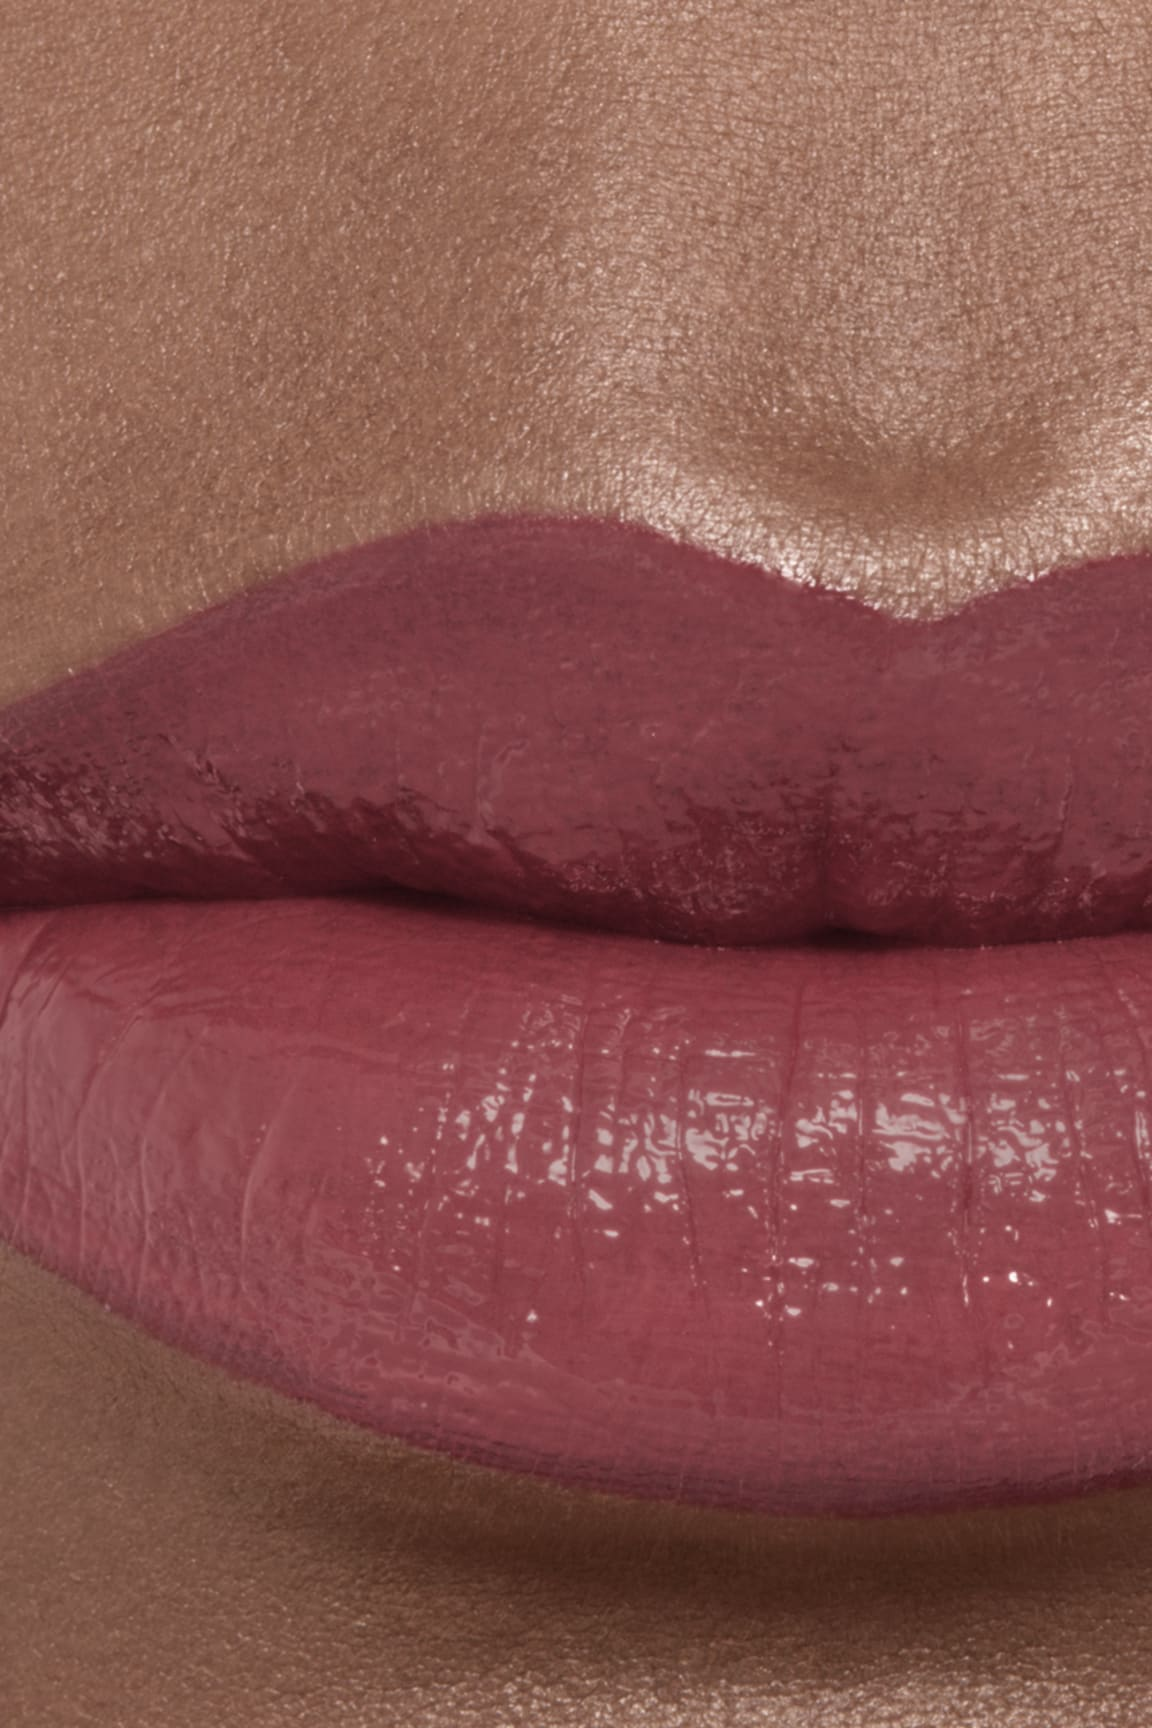 Application makeup visual 2 - ROUGE COCO BLOOM 118 - RADIANT